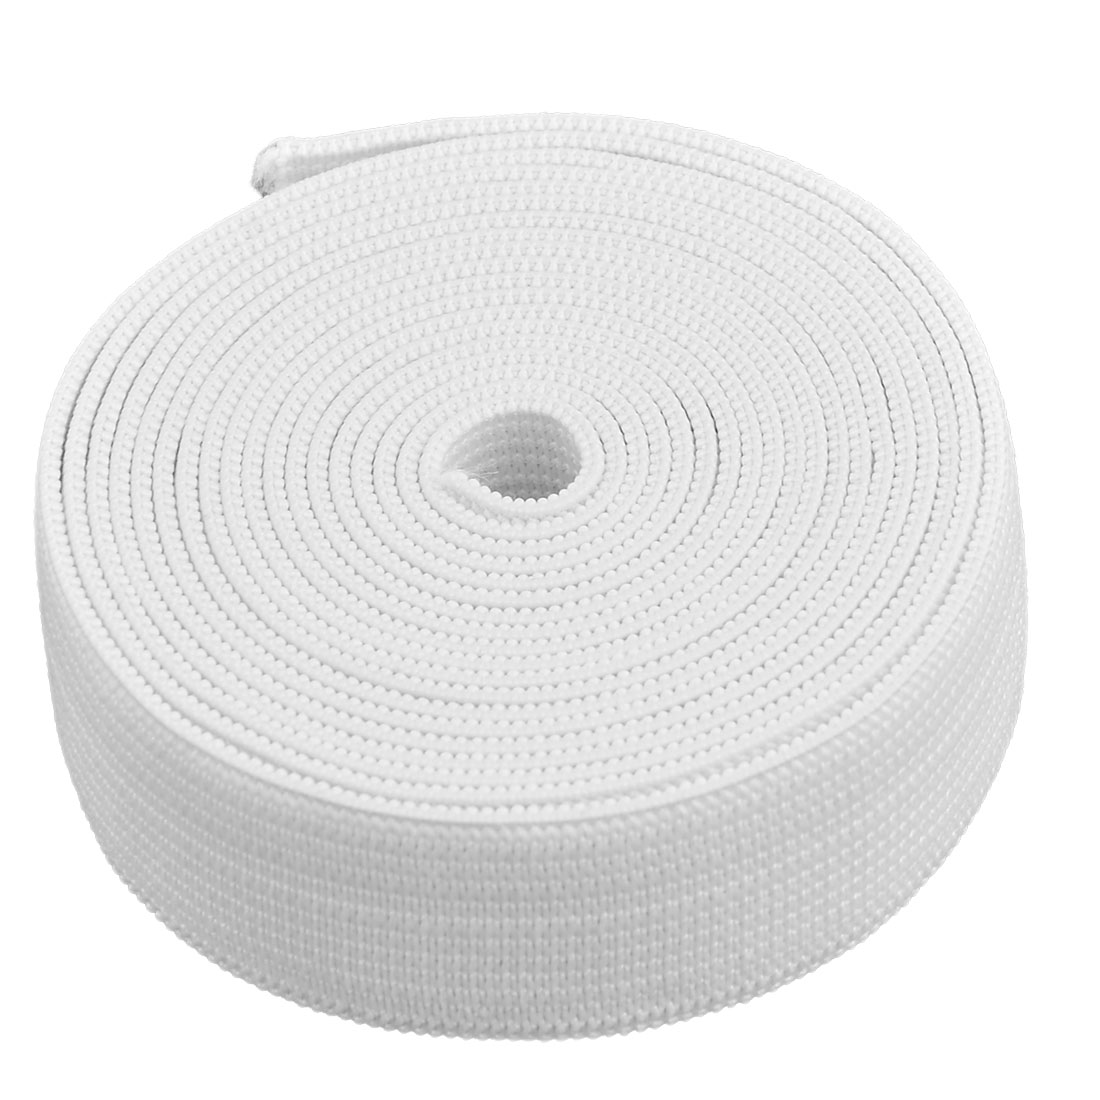 Rubber Stretchy Elastic String Sewing Pants Trousers Garments Band Rope White